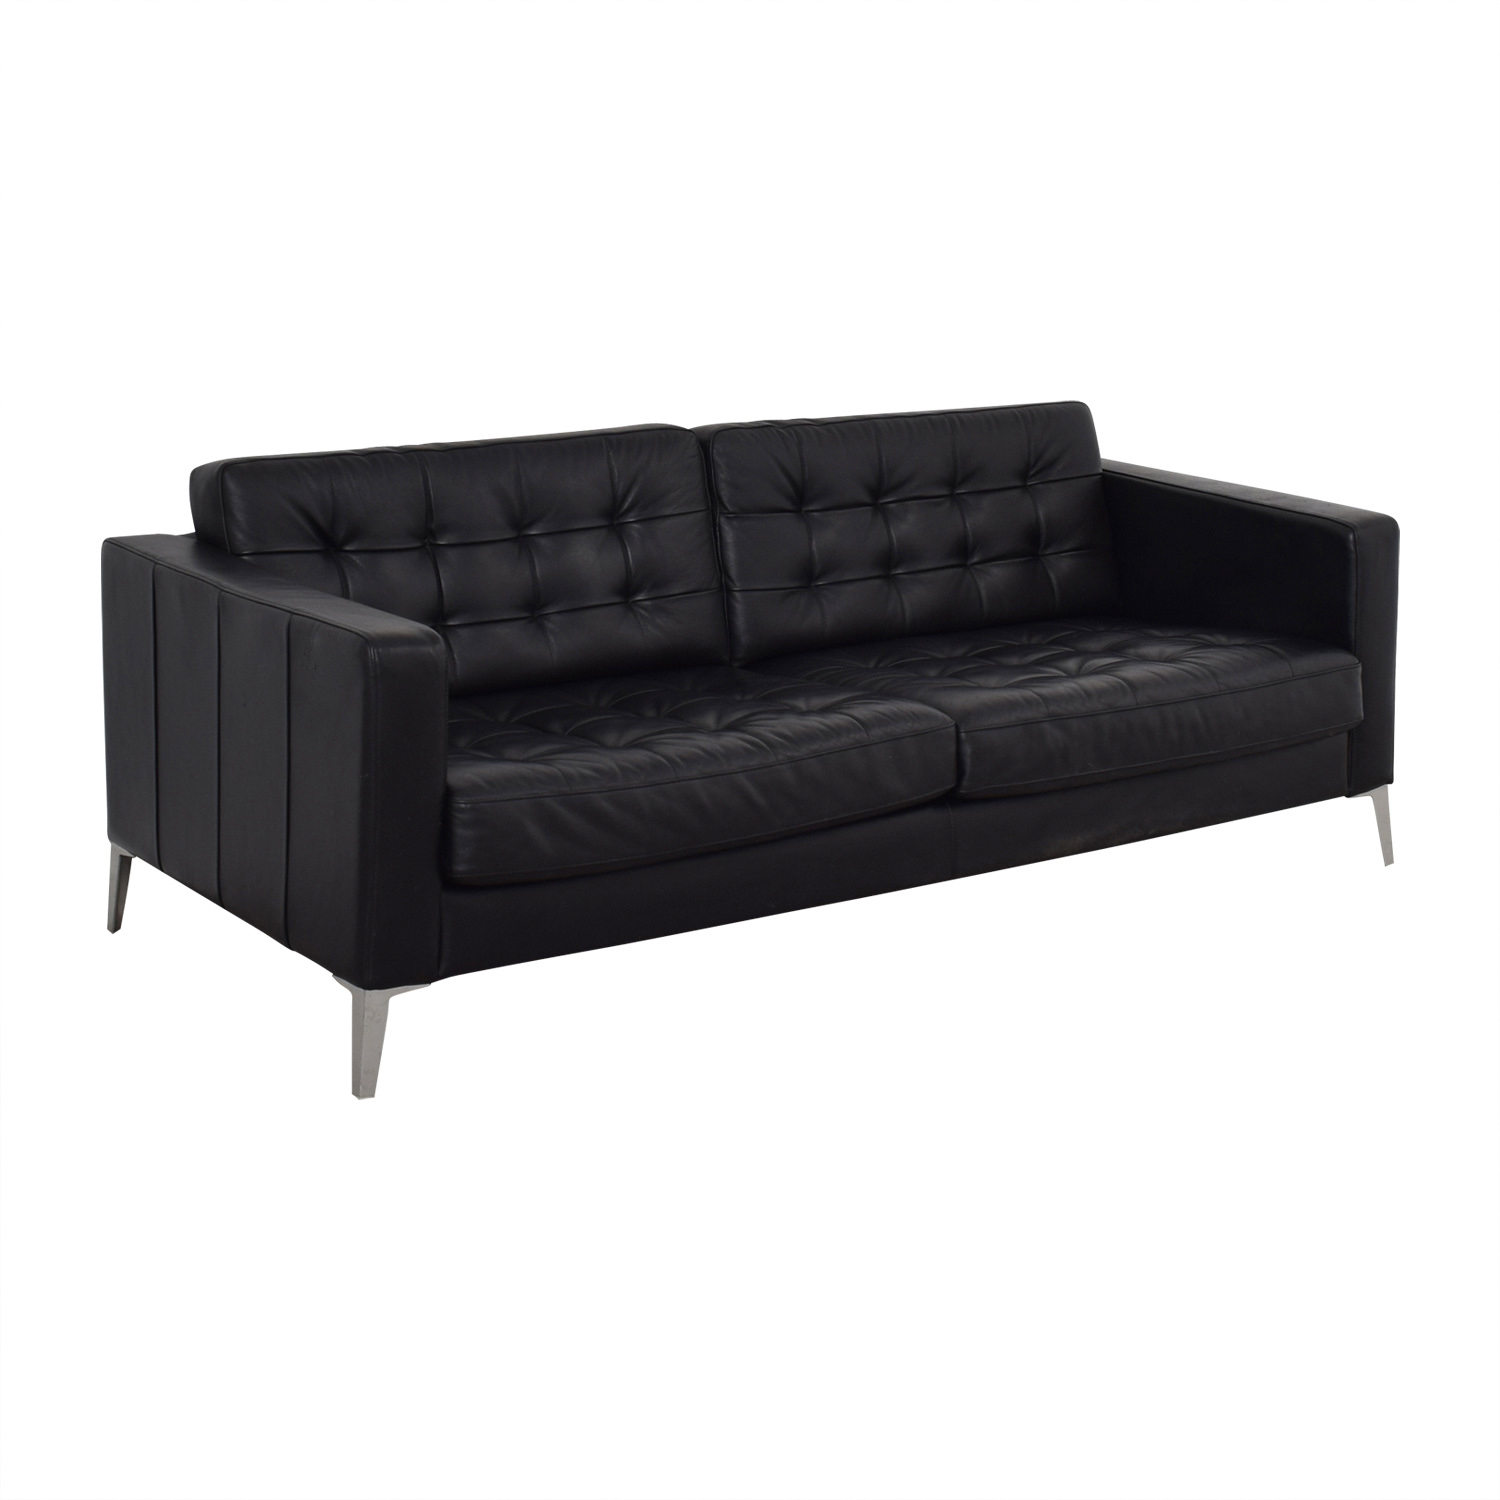 Ikea Black Tufted Two Cushion Sofa